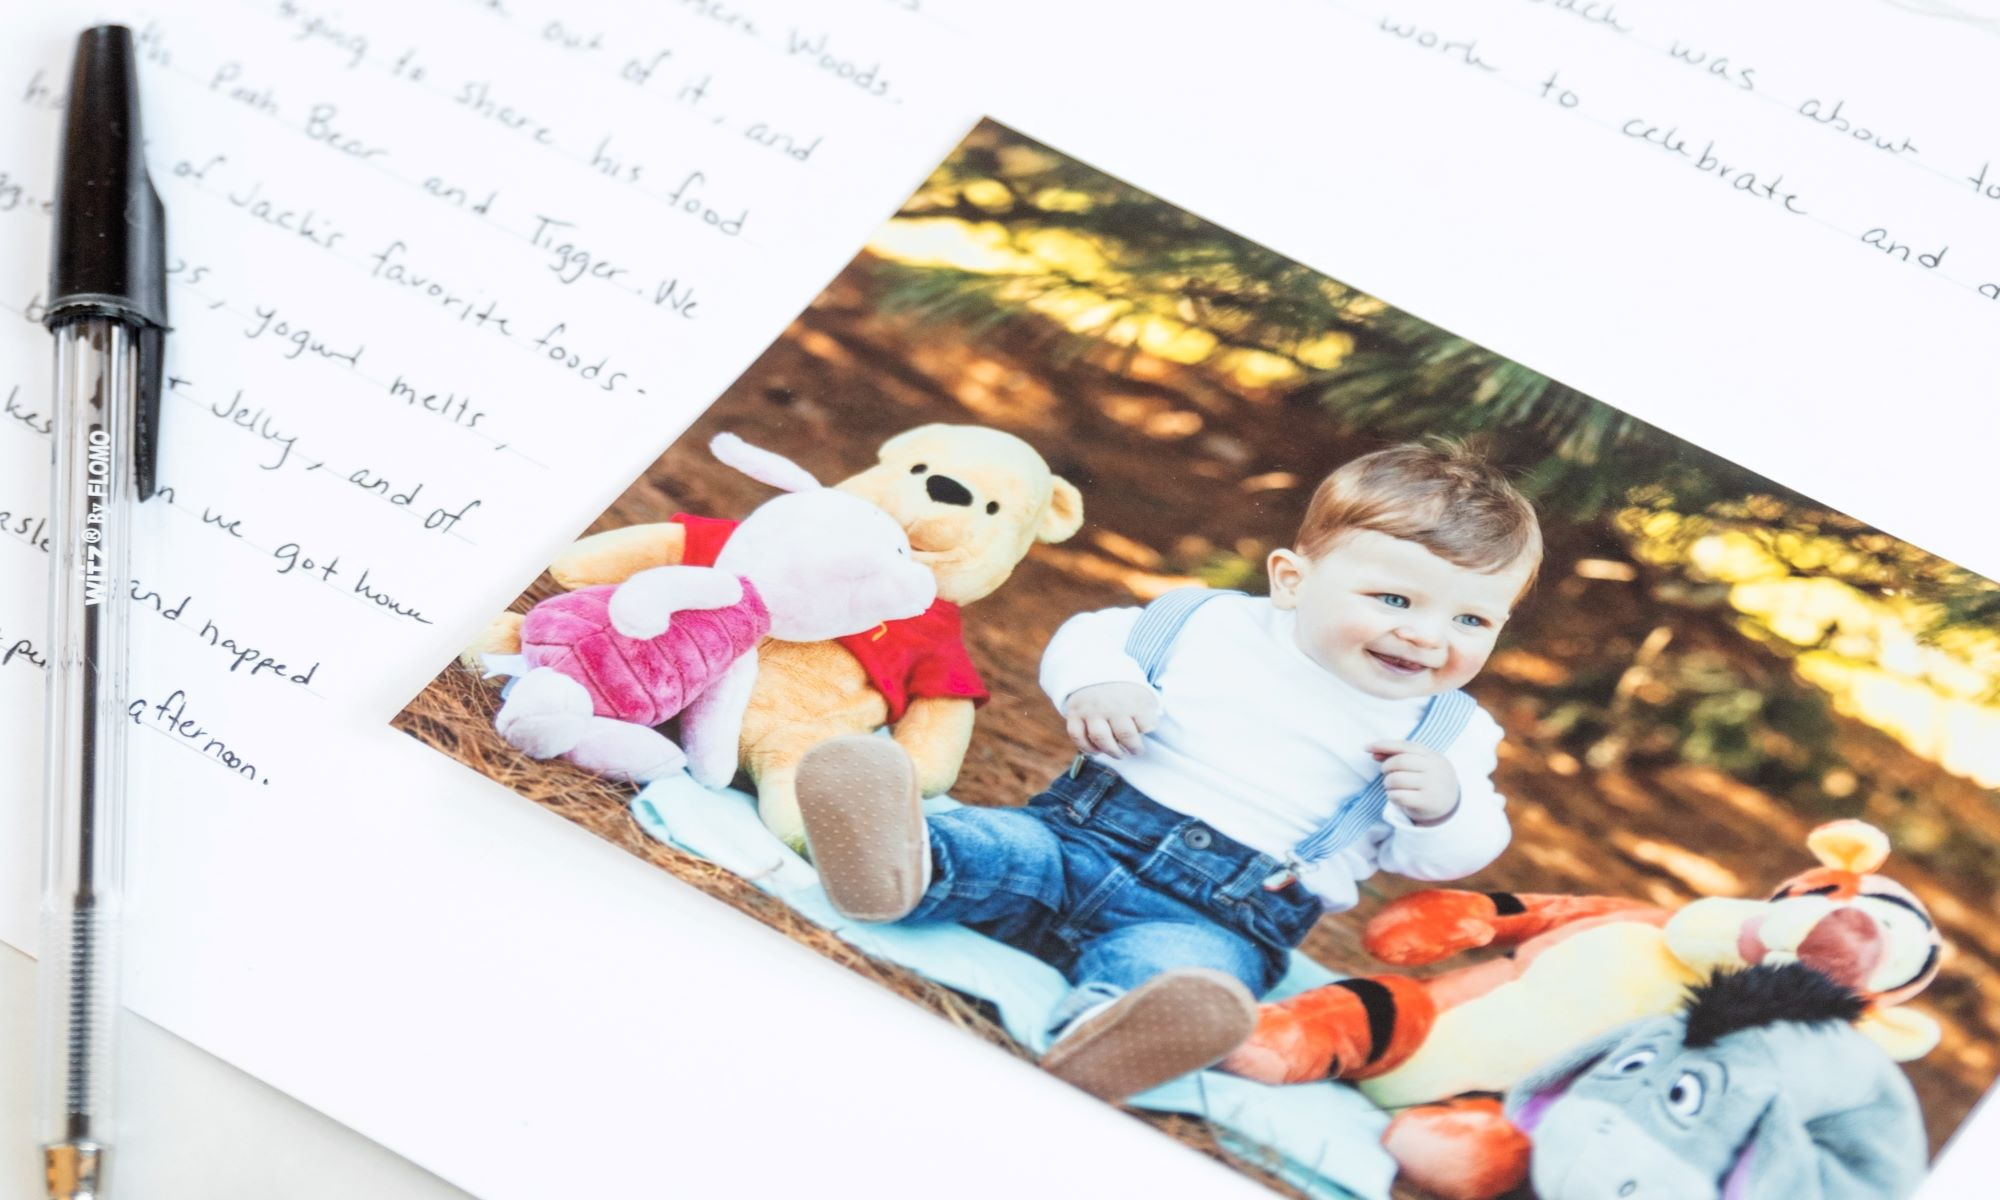 Favorite Memories Additional Insert Page with photo of toddler playing with winnie the pooh characters